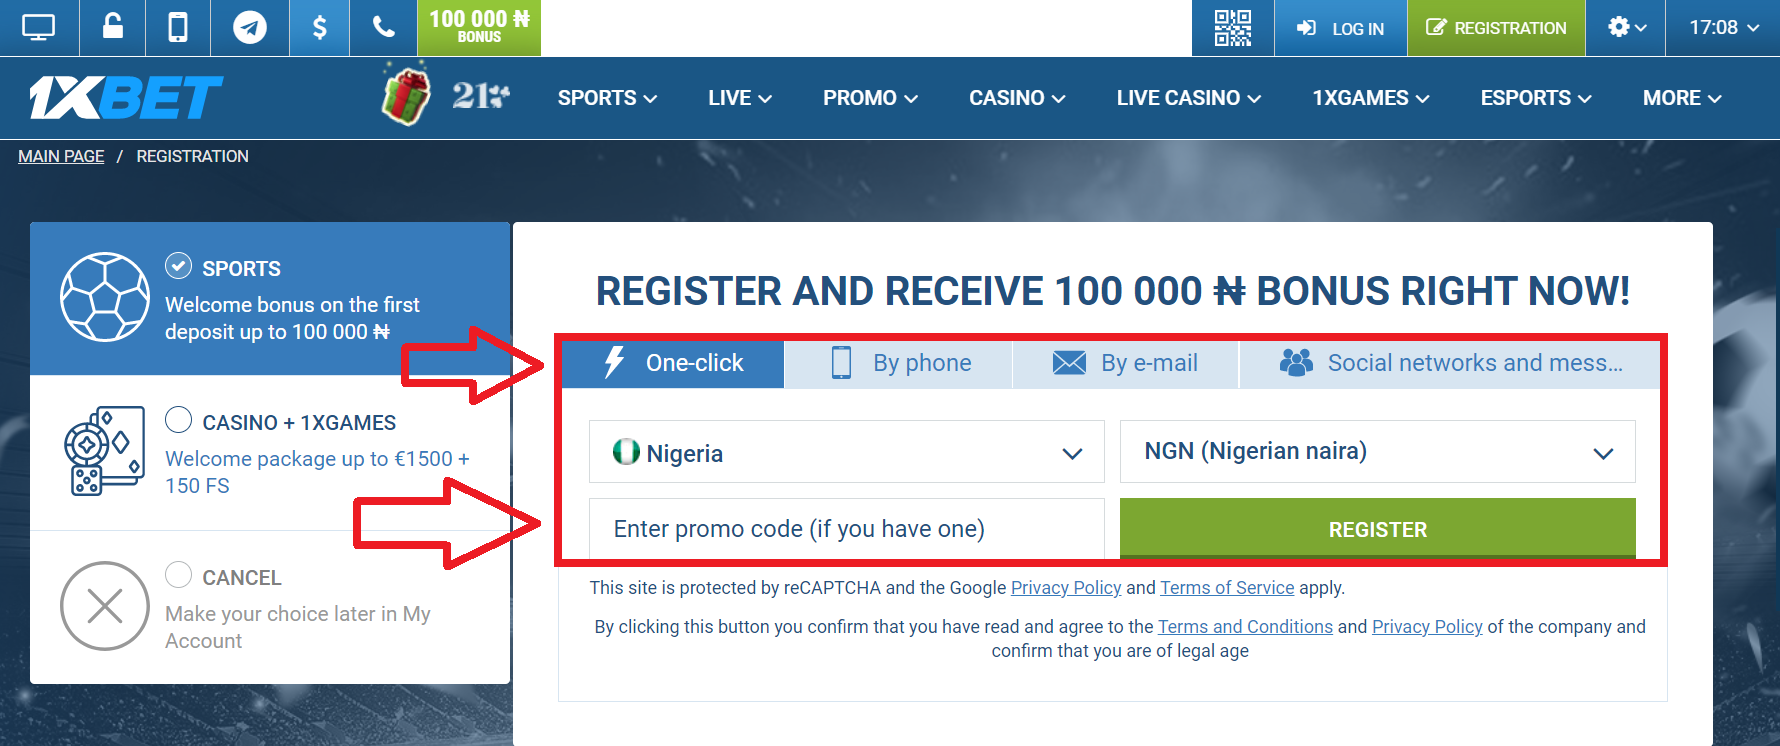 1xBet registration process by phone number